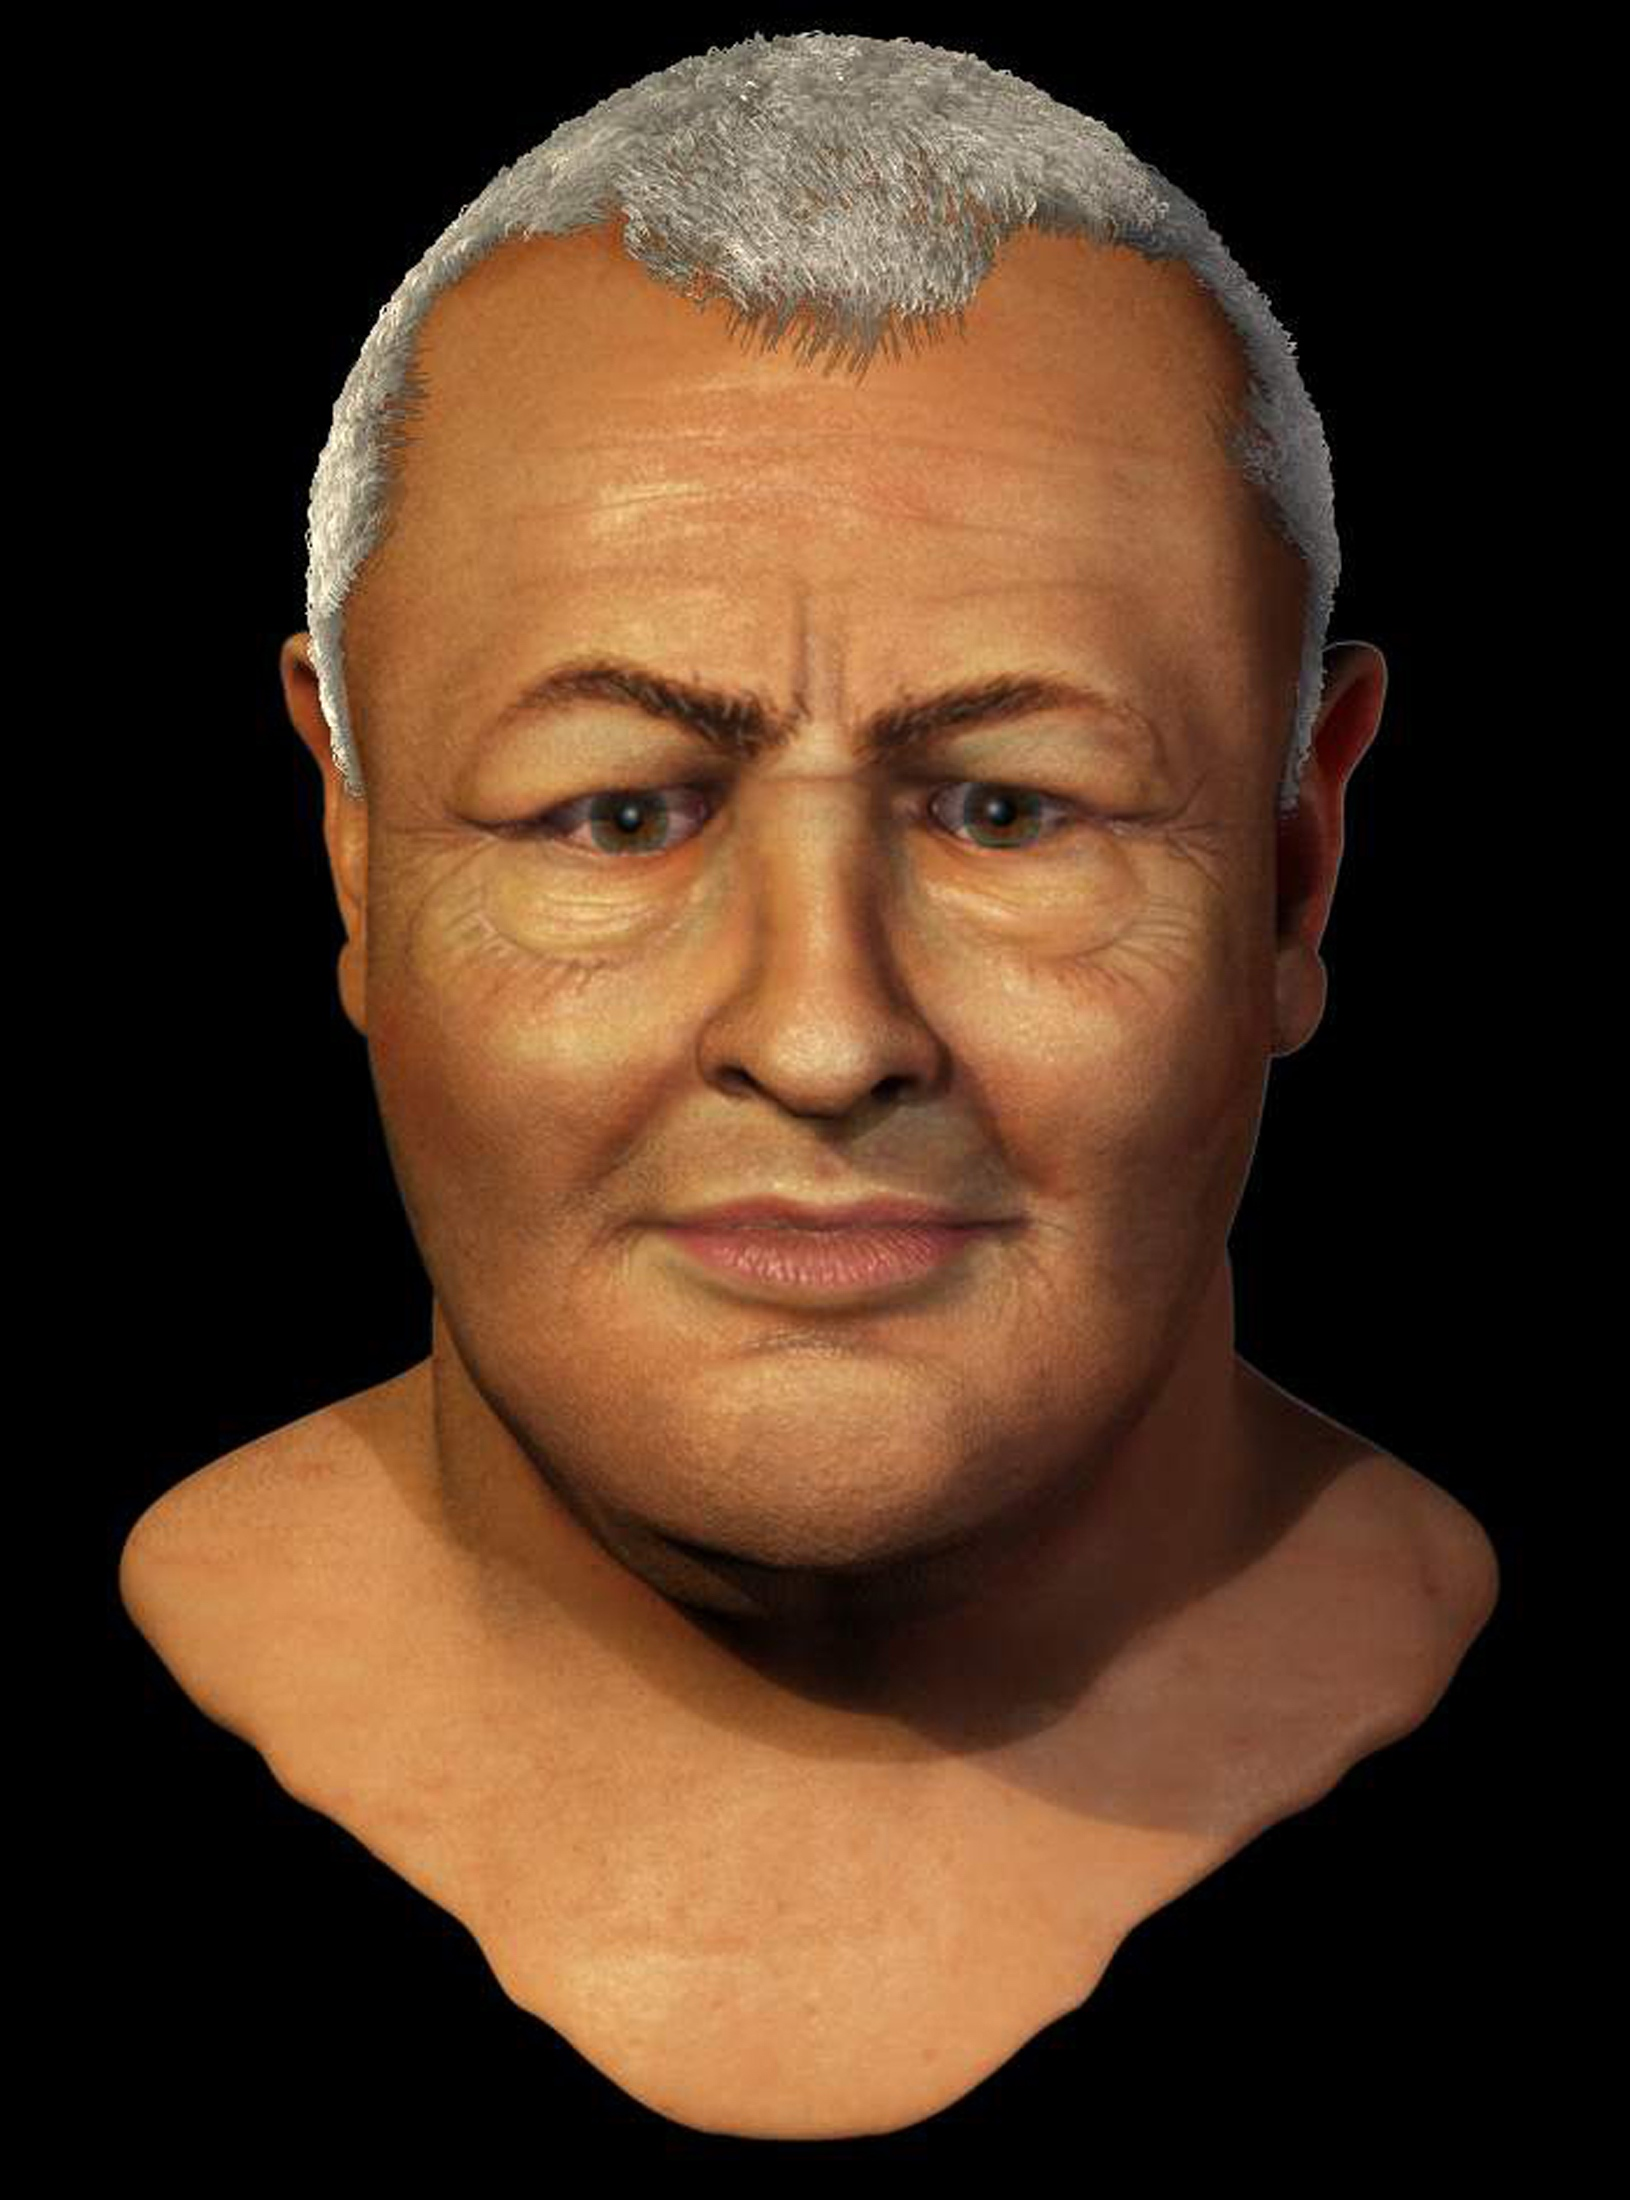 A handout graphic image released on Thursday in Germany shows a reconstruction of Bach's face.